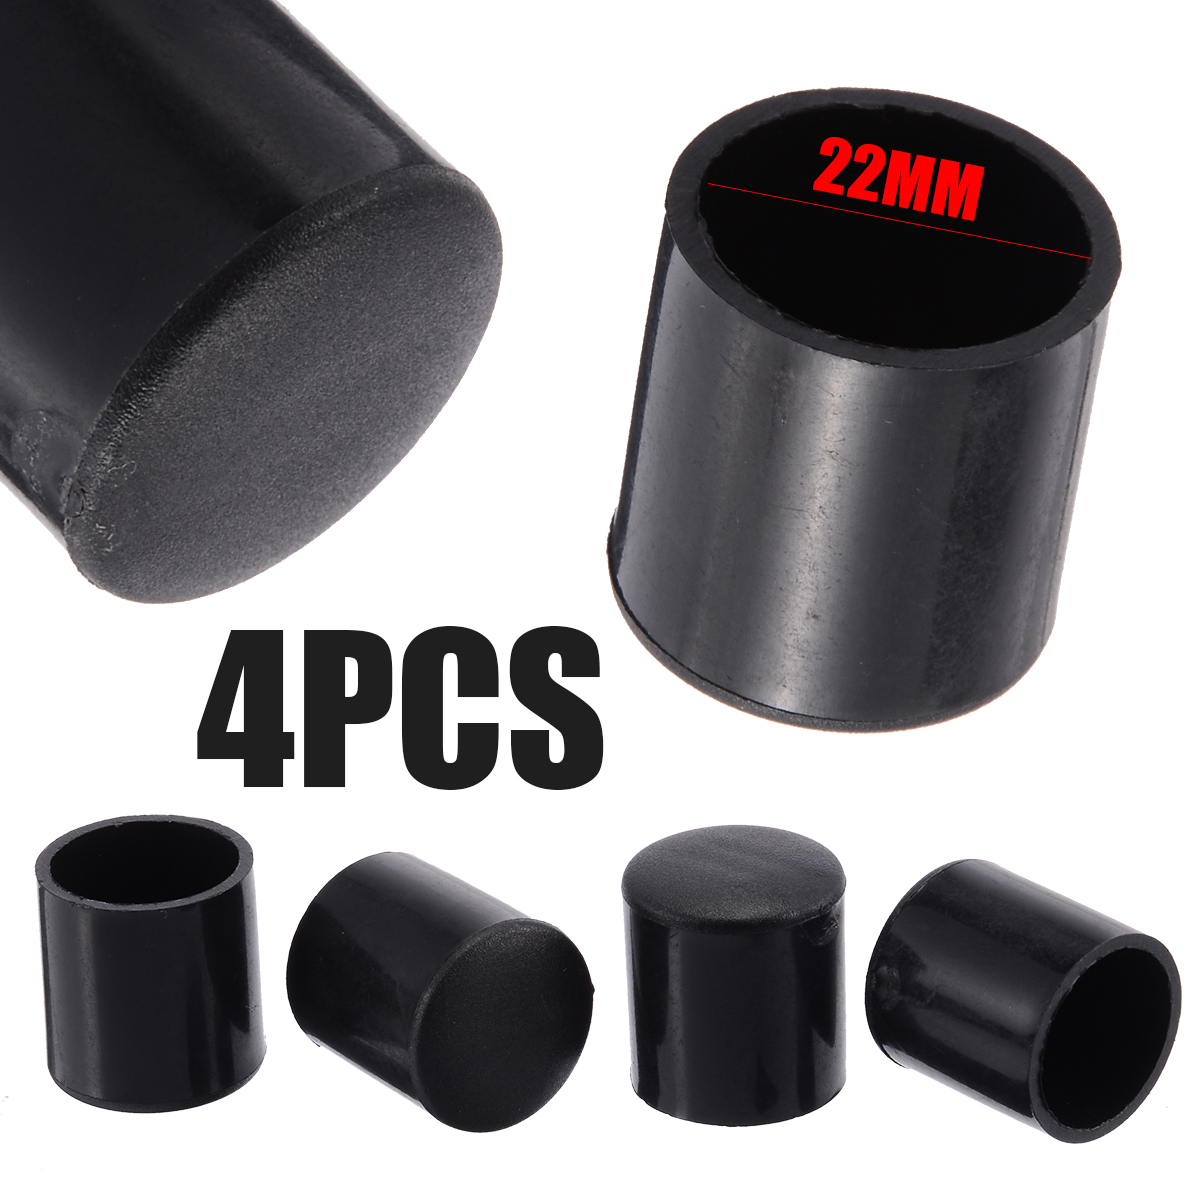 4pcs Furniture Leg Floor Anti Scratch Chair Feet Legs Cap 16mm/19mm/22mm/25mm Sofa Chair Feet Protector Caps